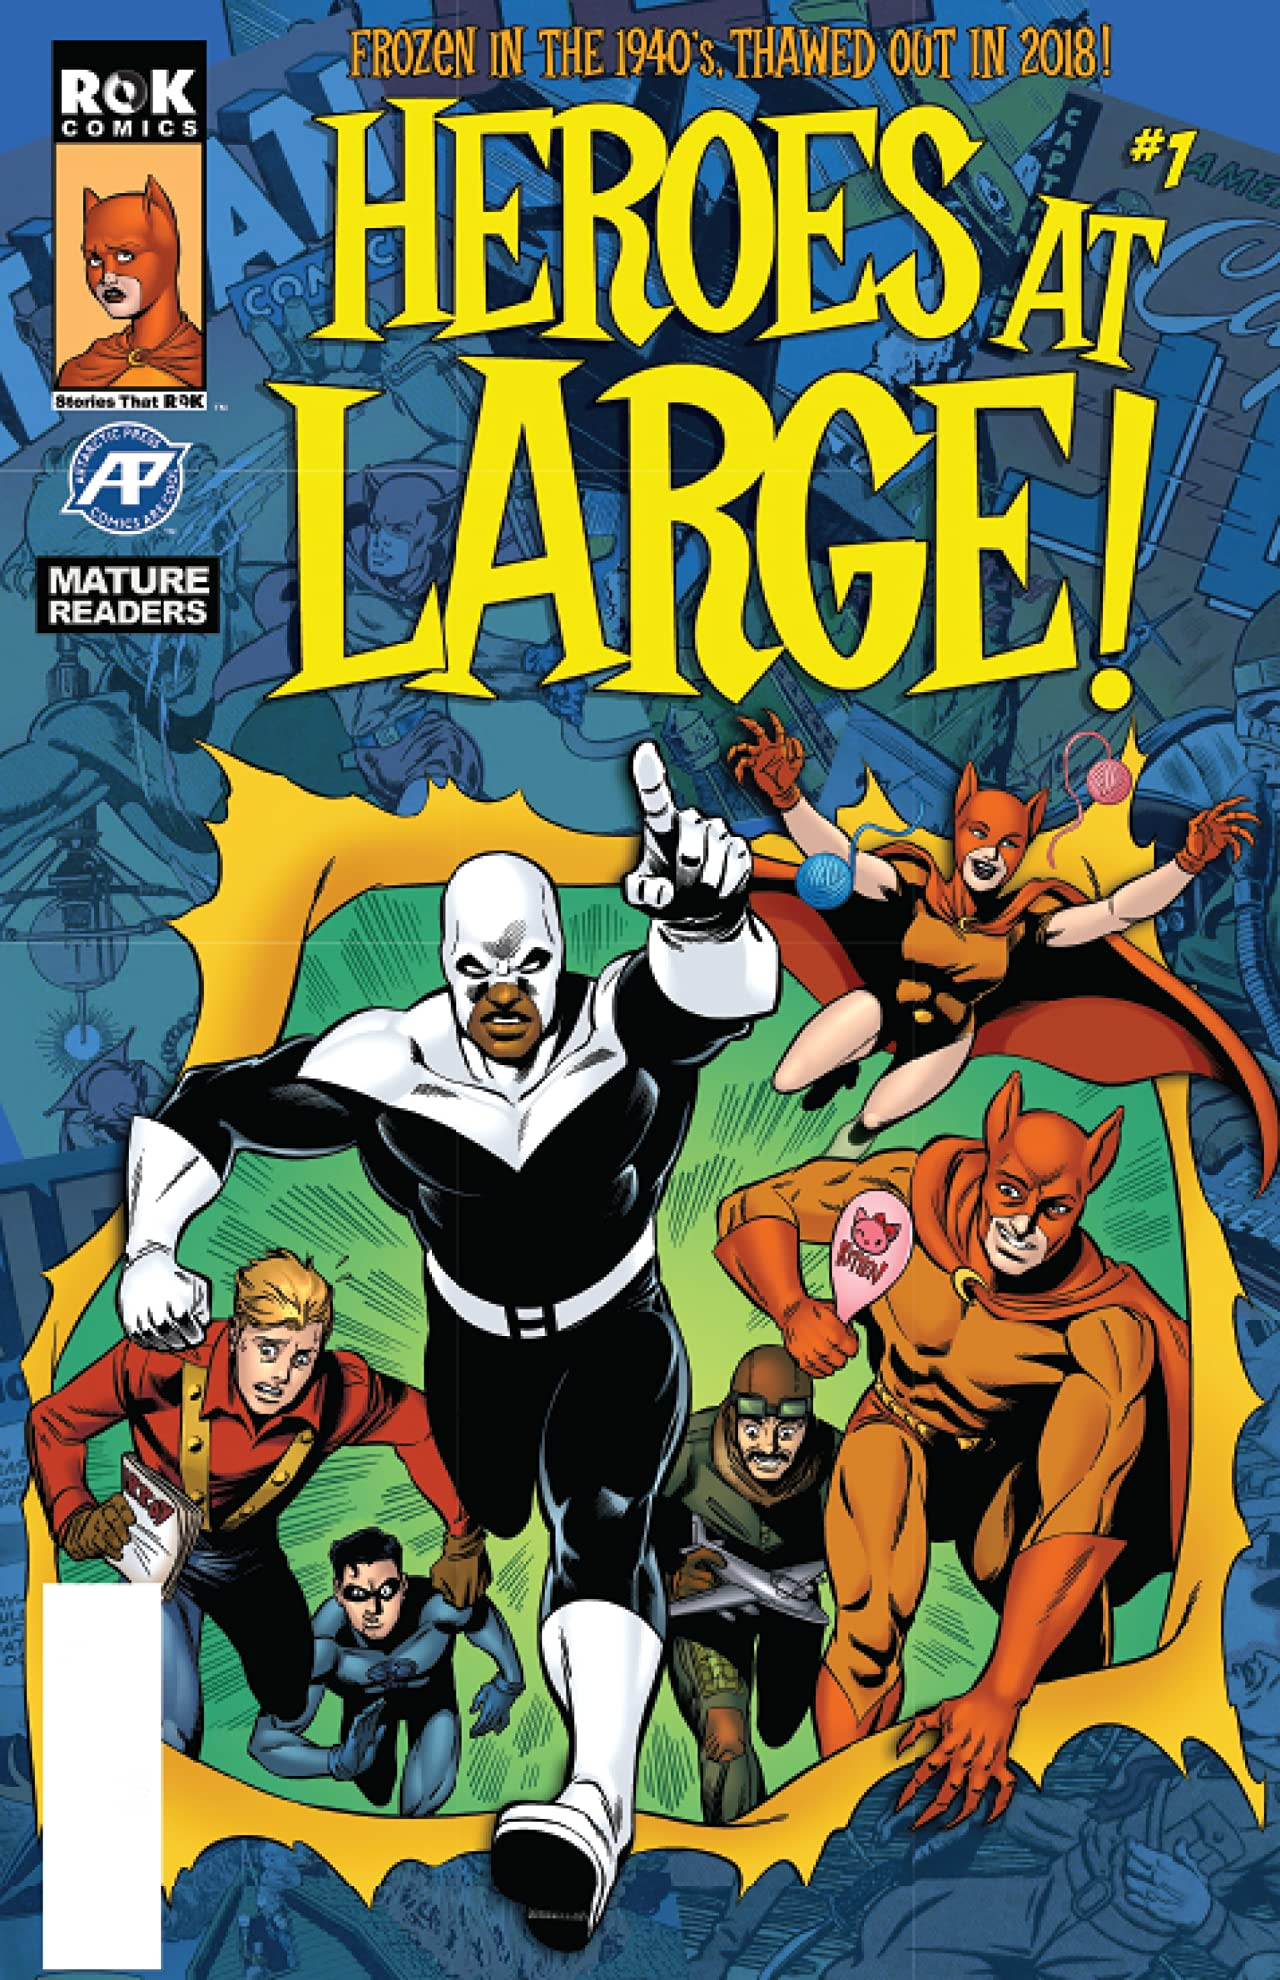 Heroes At Large! #1